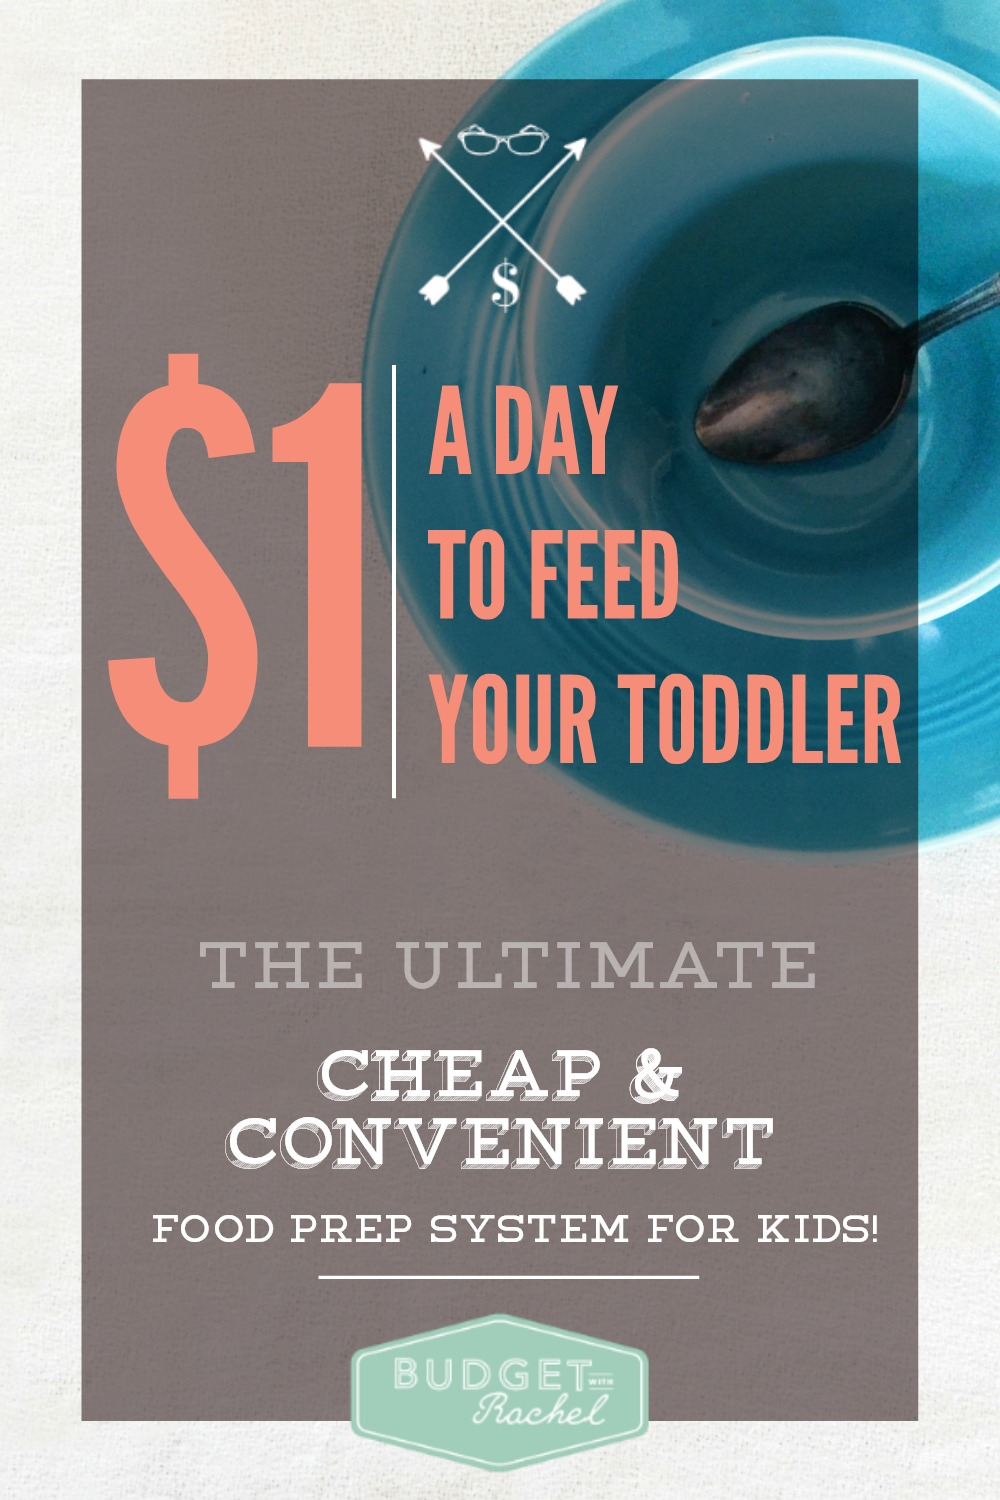 Feed Your Toddler For $1Day. The Ultimate Cheap and Convenient Food Prep System For Kids! OMG! This has been life changing! I used to struggle to come up with what food to pack for my daughter for the sitter. Not anymore! This system is so simple, cheap and convenient. I can't believe I didn't think of this myself! I love how the meals are organized so they are completely balanced.